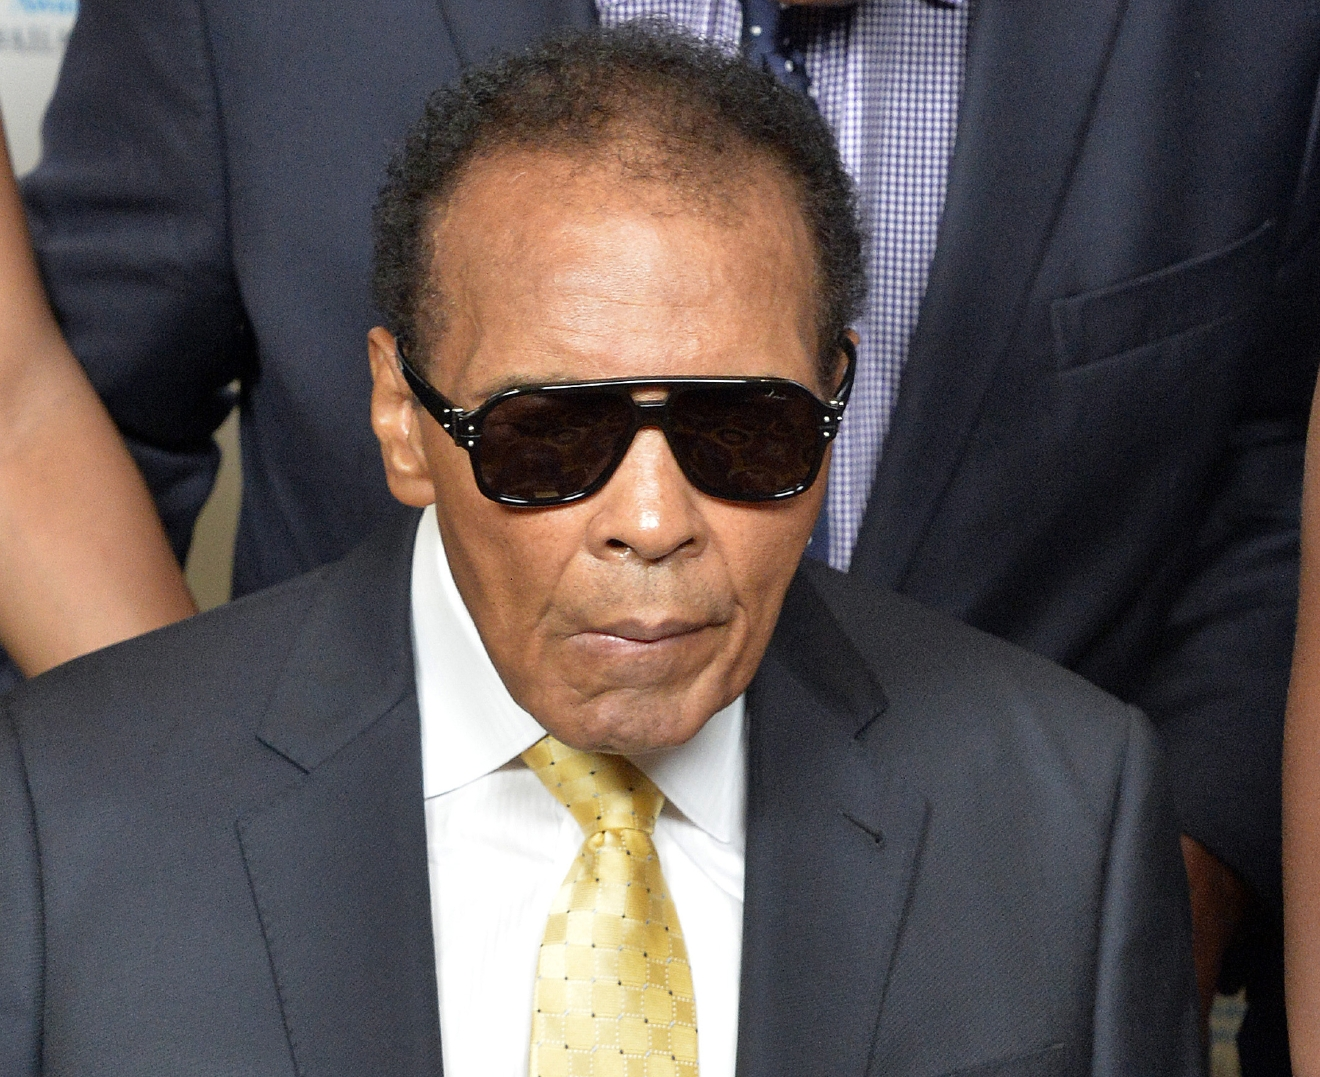 FILE - In this Sept. 27, 2014, file photo, Muhammad Ali is shown before the Ali Humanitarian Awards ceremony in Louisville, Ky. A spokesman for boxing great Muhammad Ali says the former heavyweight champion is being treated in a hospital for a respiratory issue. Spokesman Bob Gunnell said Thursday, June 2, 2016, that Ali is being treated by doctors as a precaution.  (AP Photo/Timothy D. Easley, File)